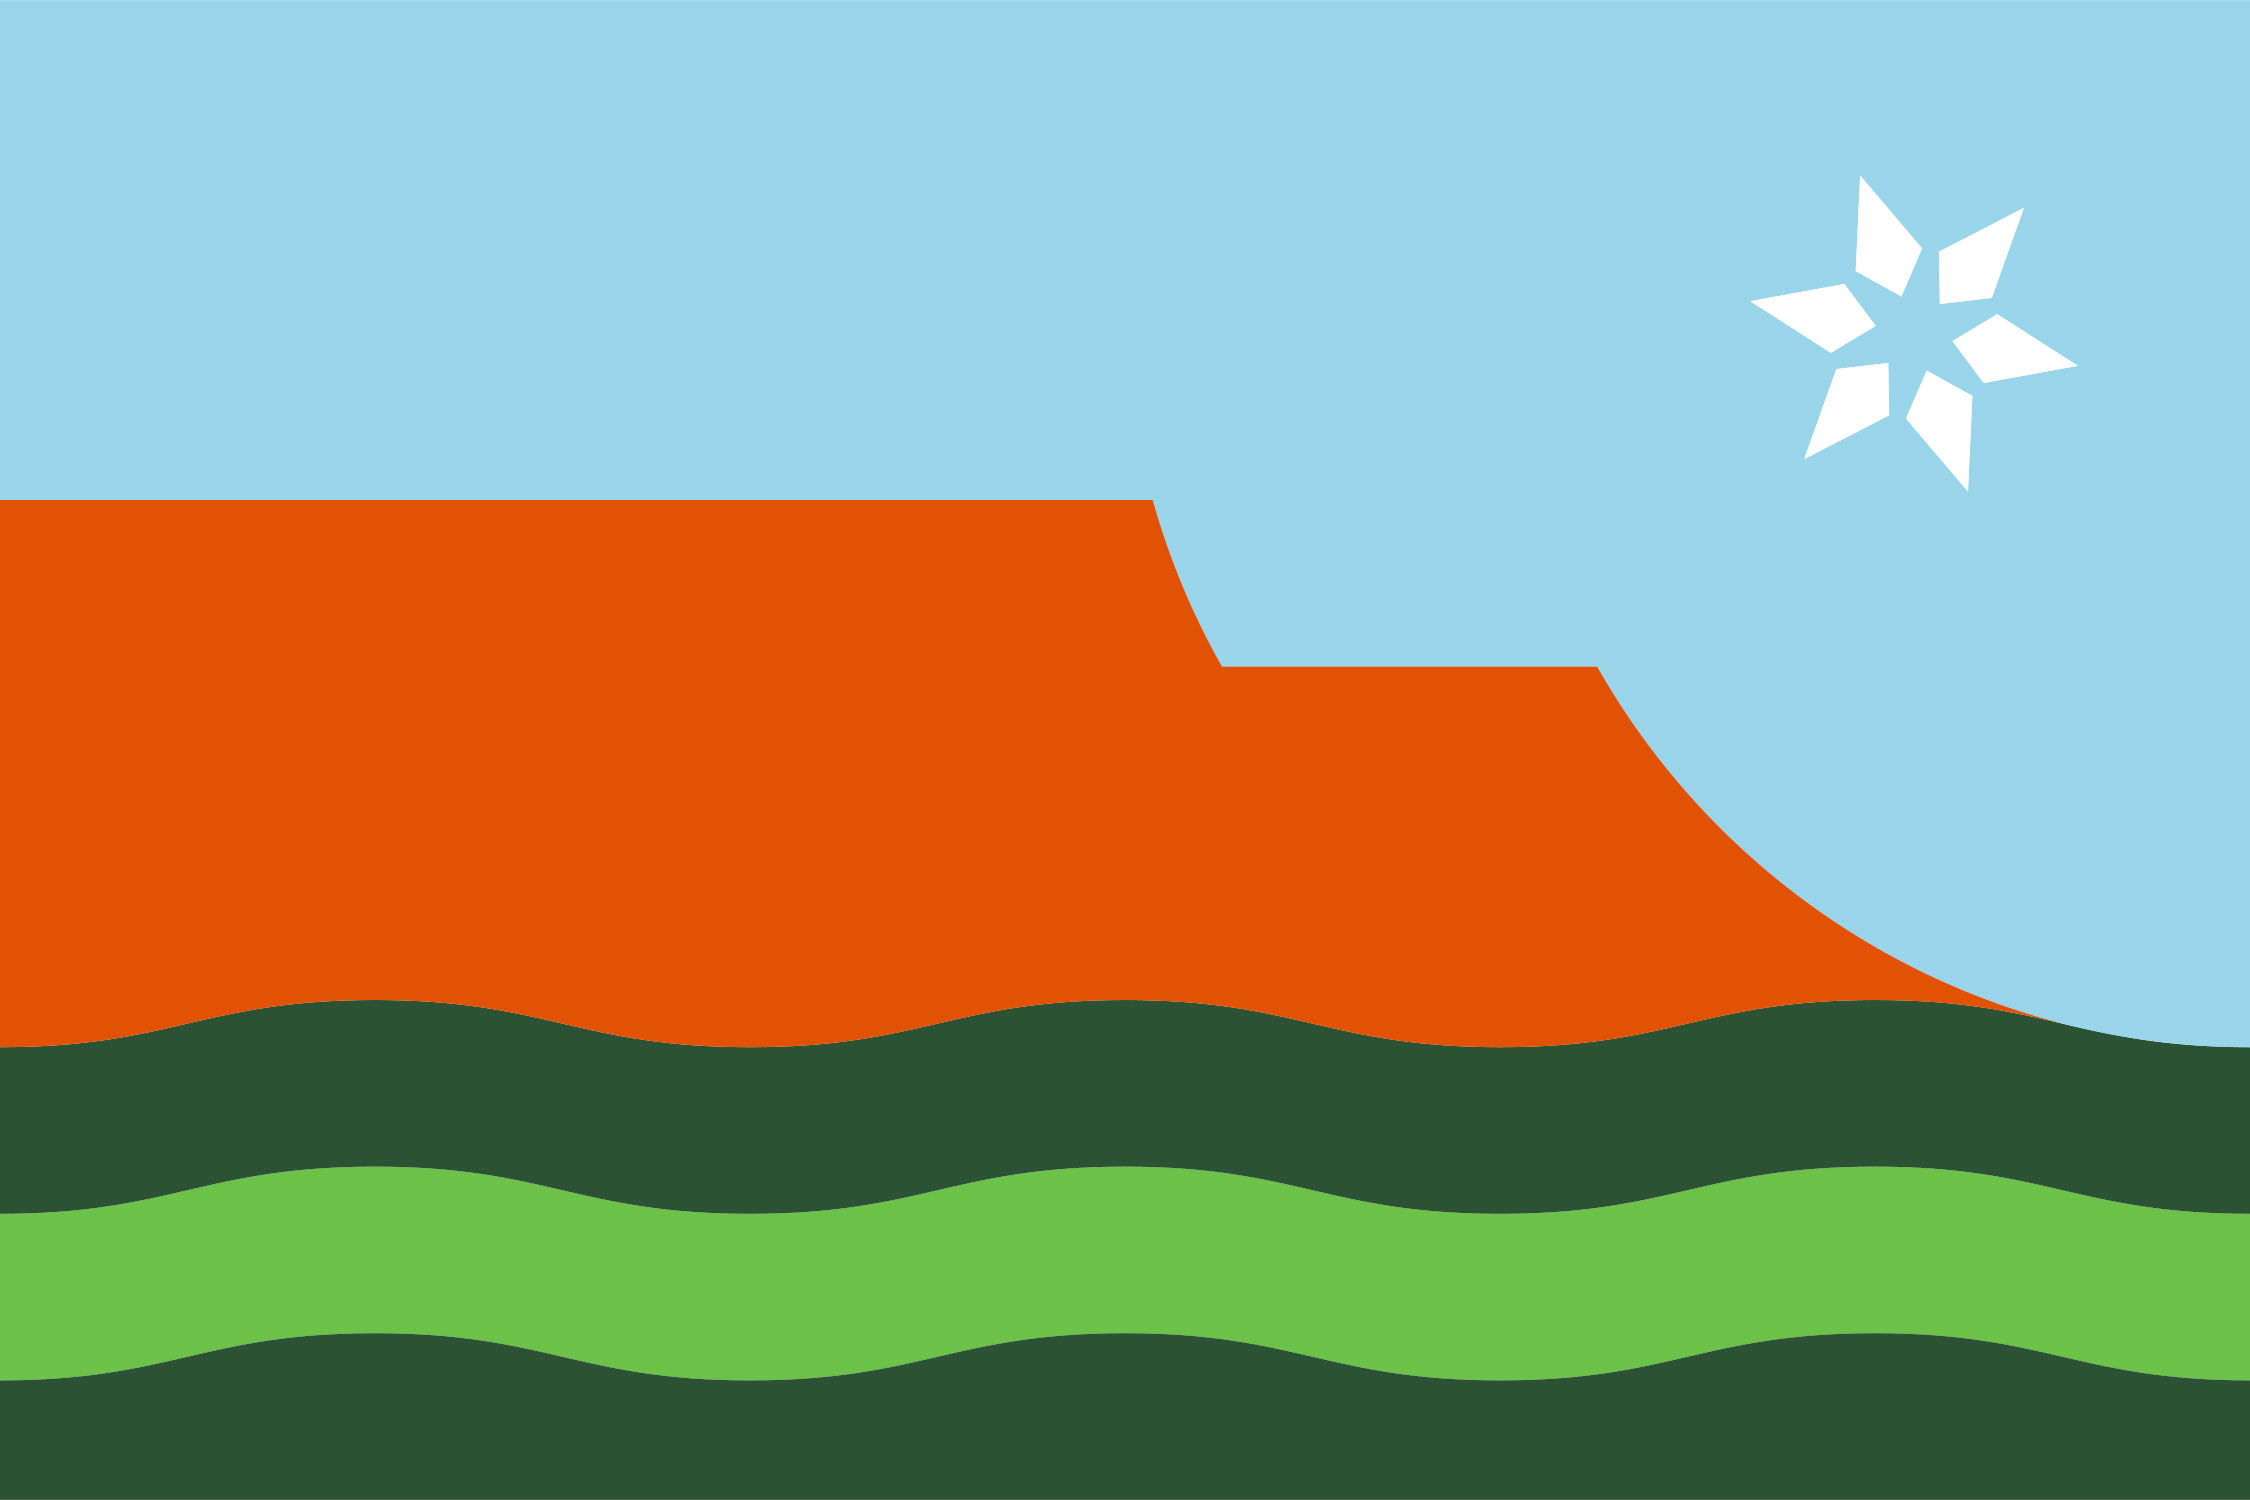 The Green River Community Flag